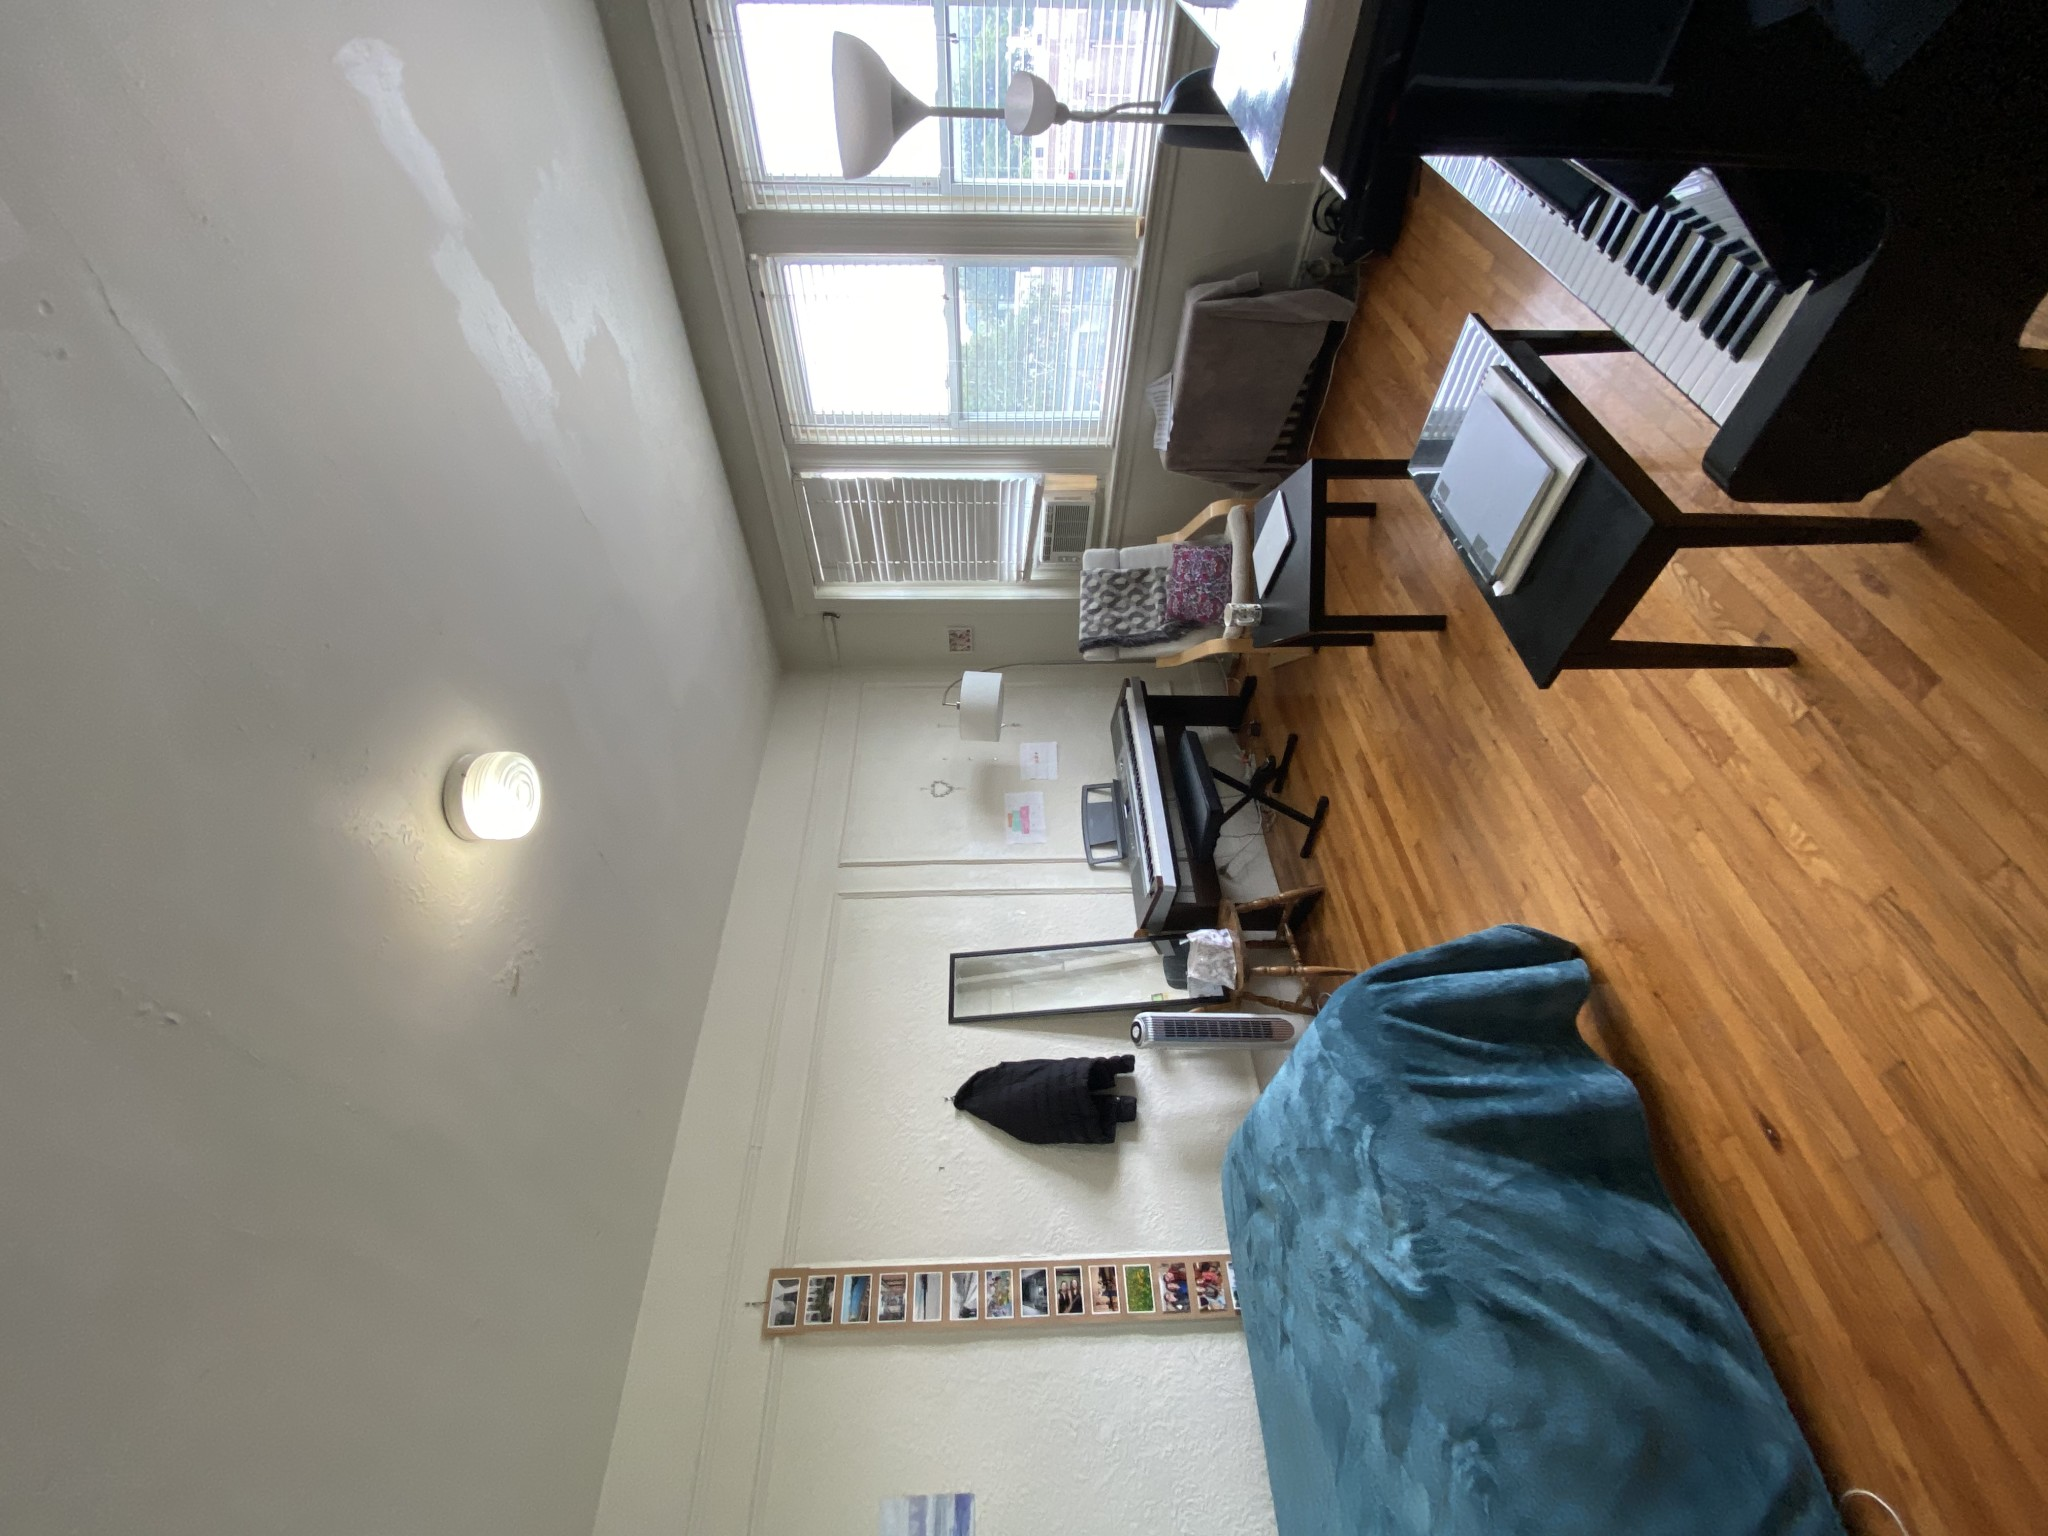 SWEET 2 BED~~~BostoN~~~NO FEE, Avail NoW~~ HT/HW